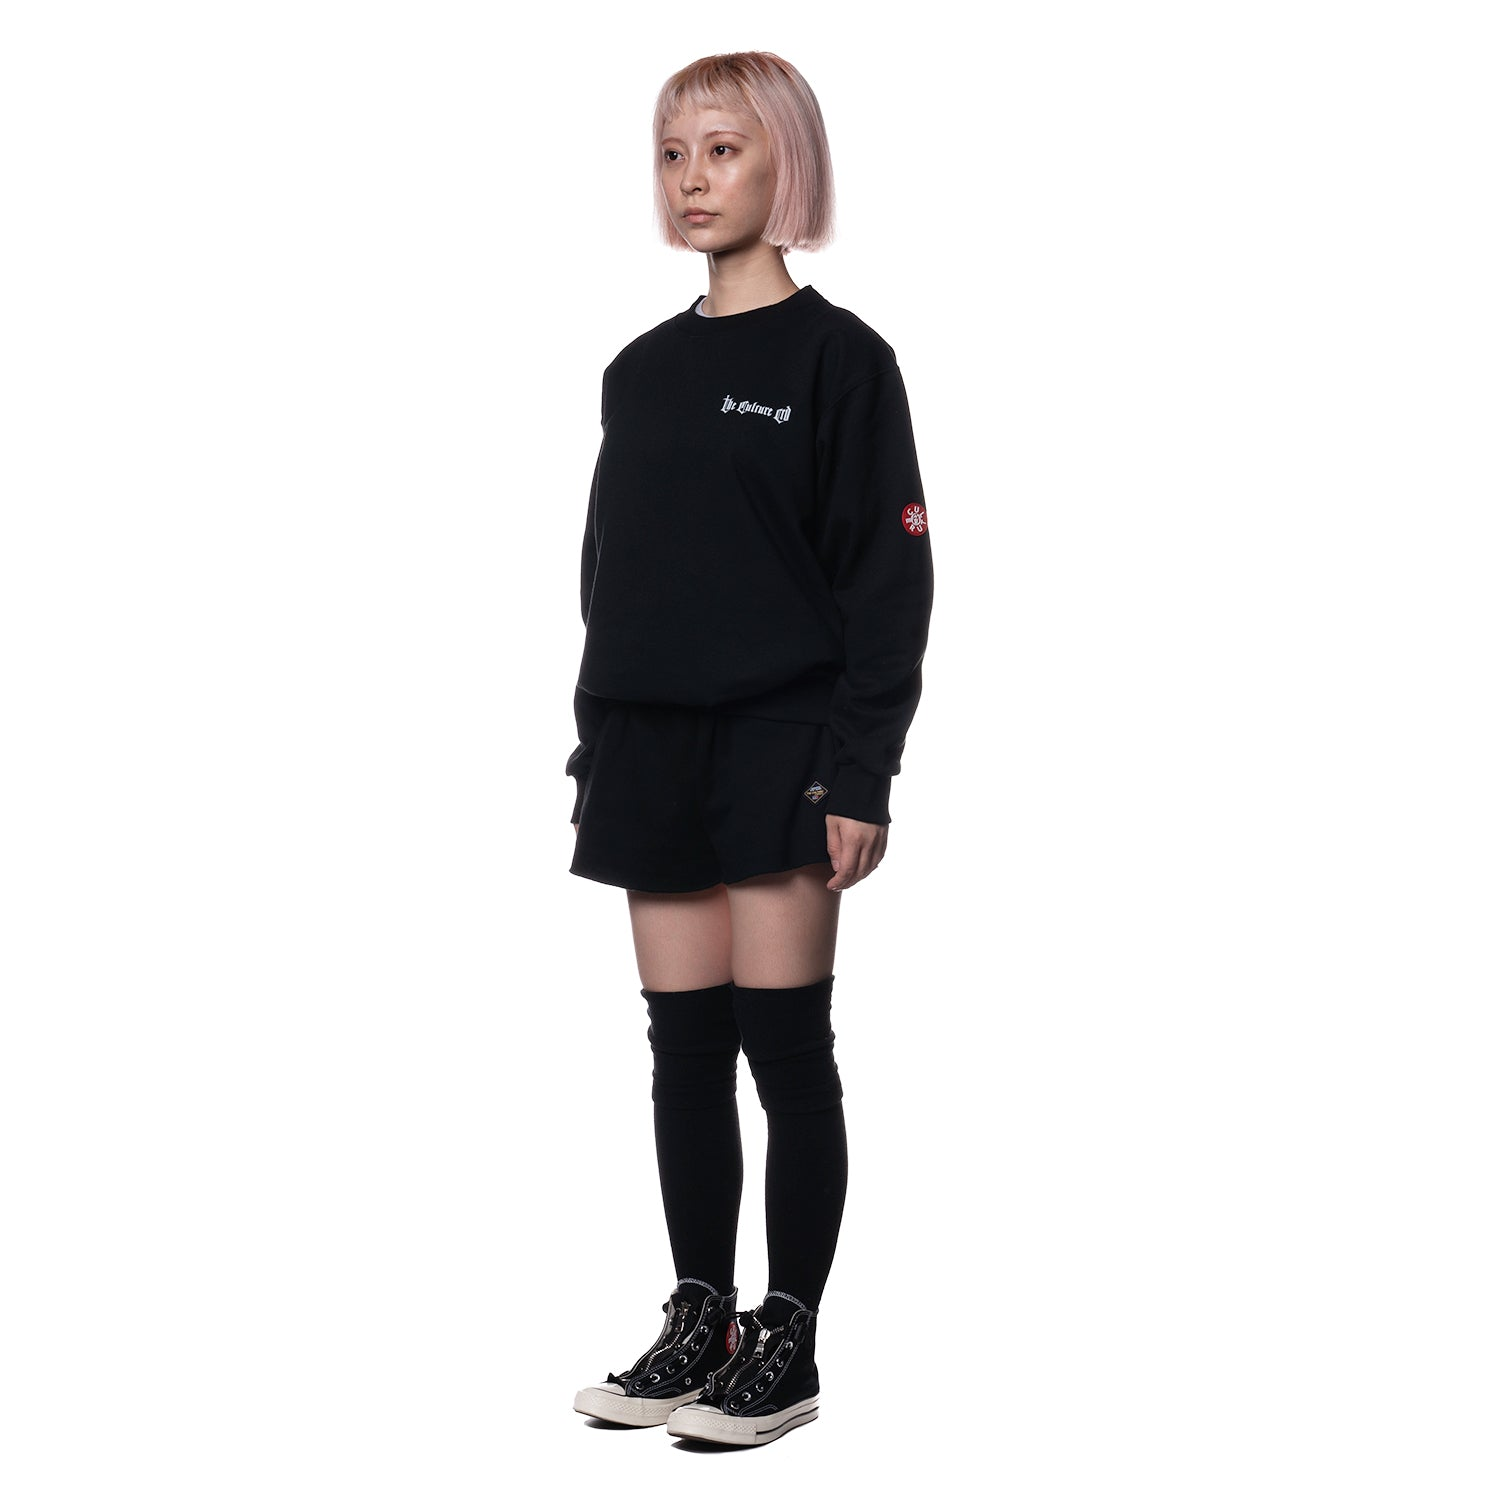 Black Anti-NSA Sweatshirt